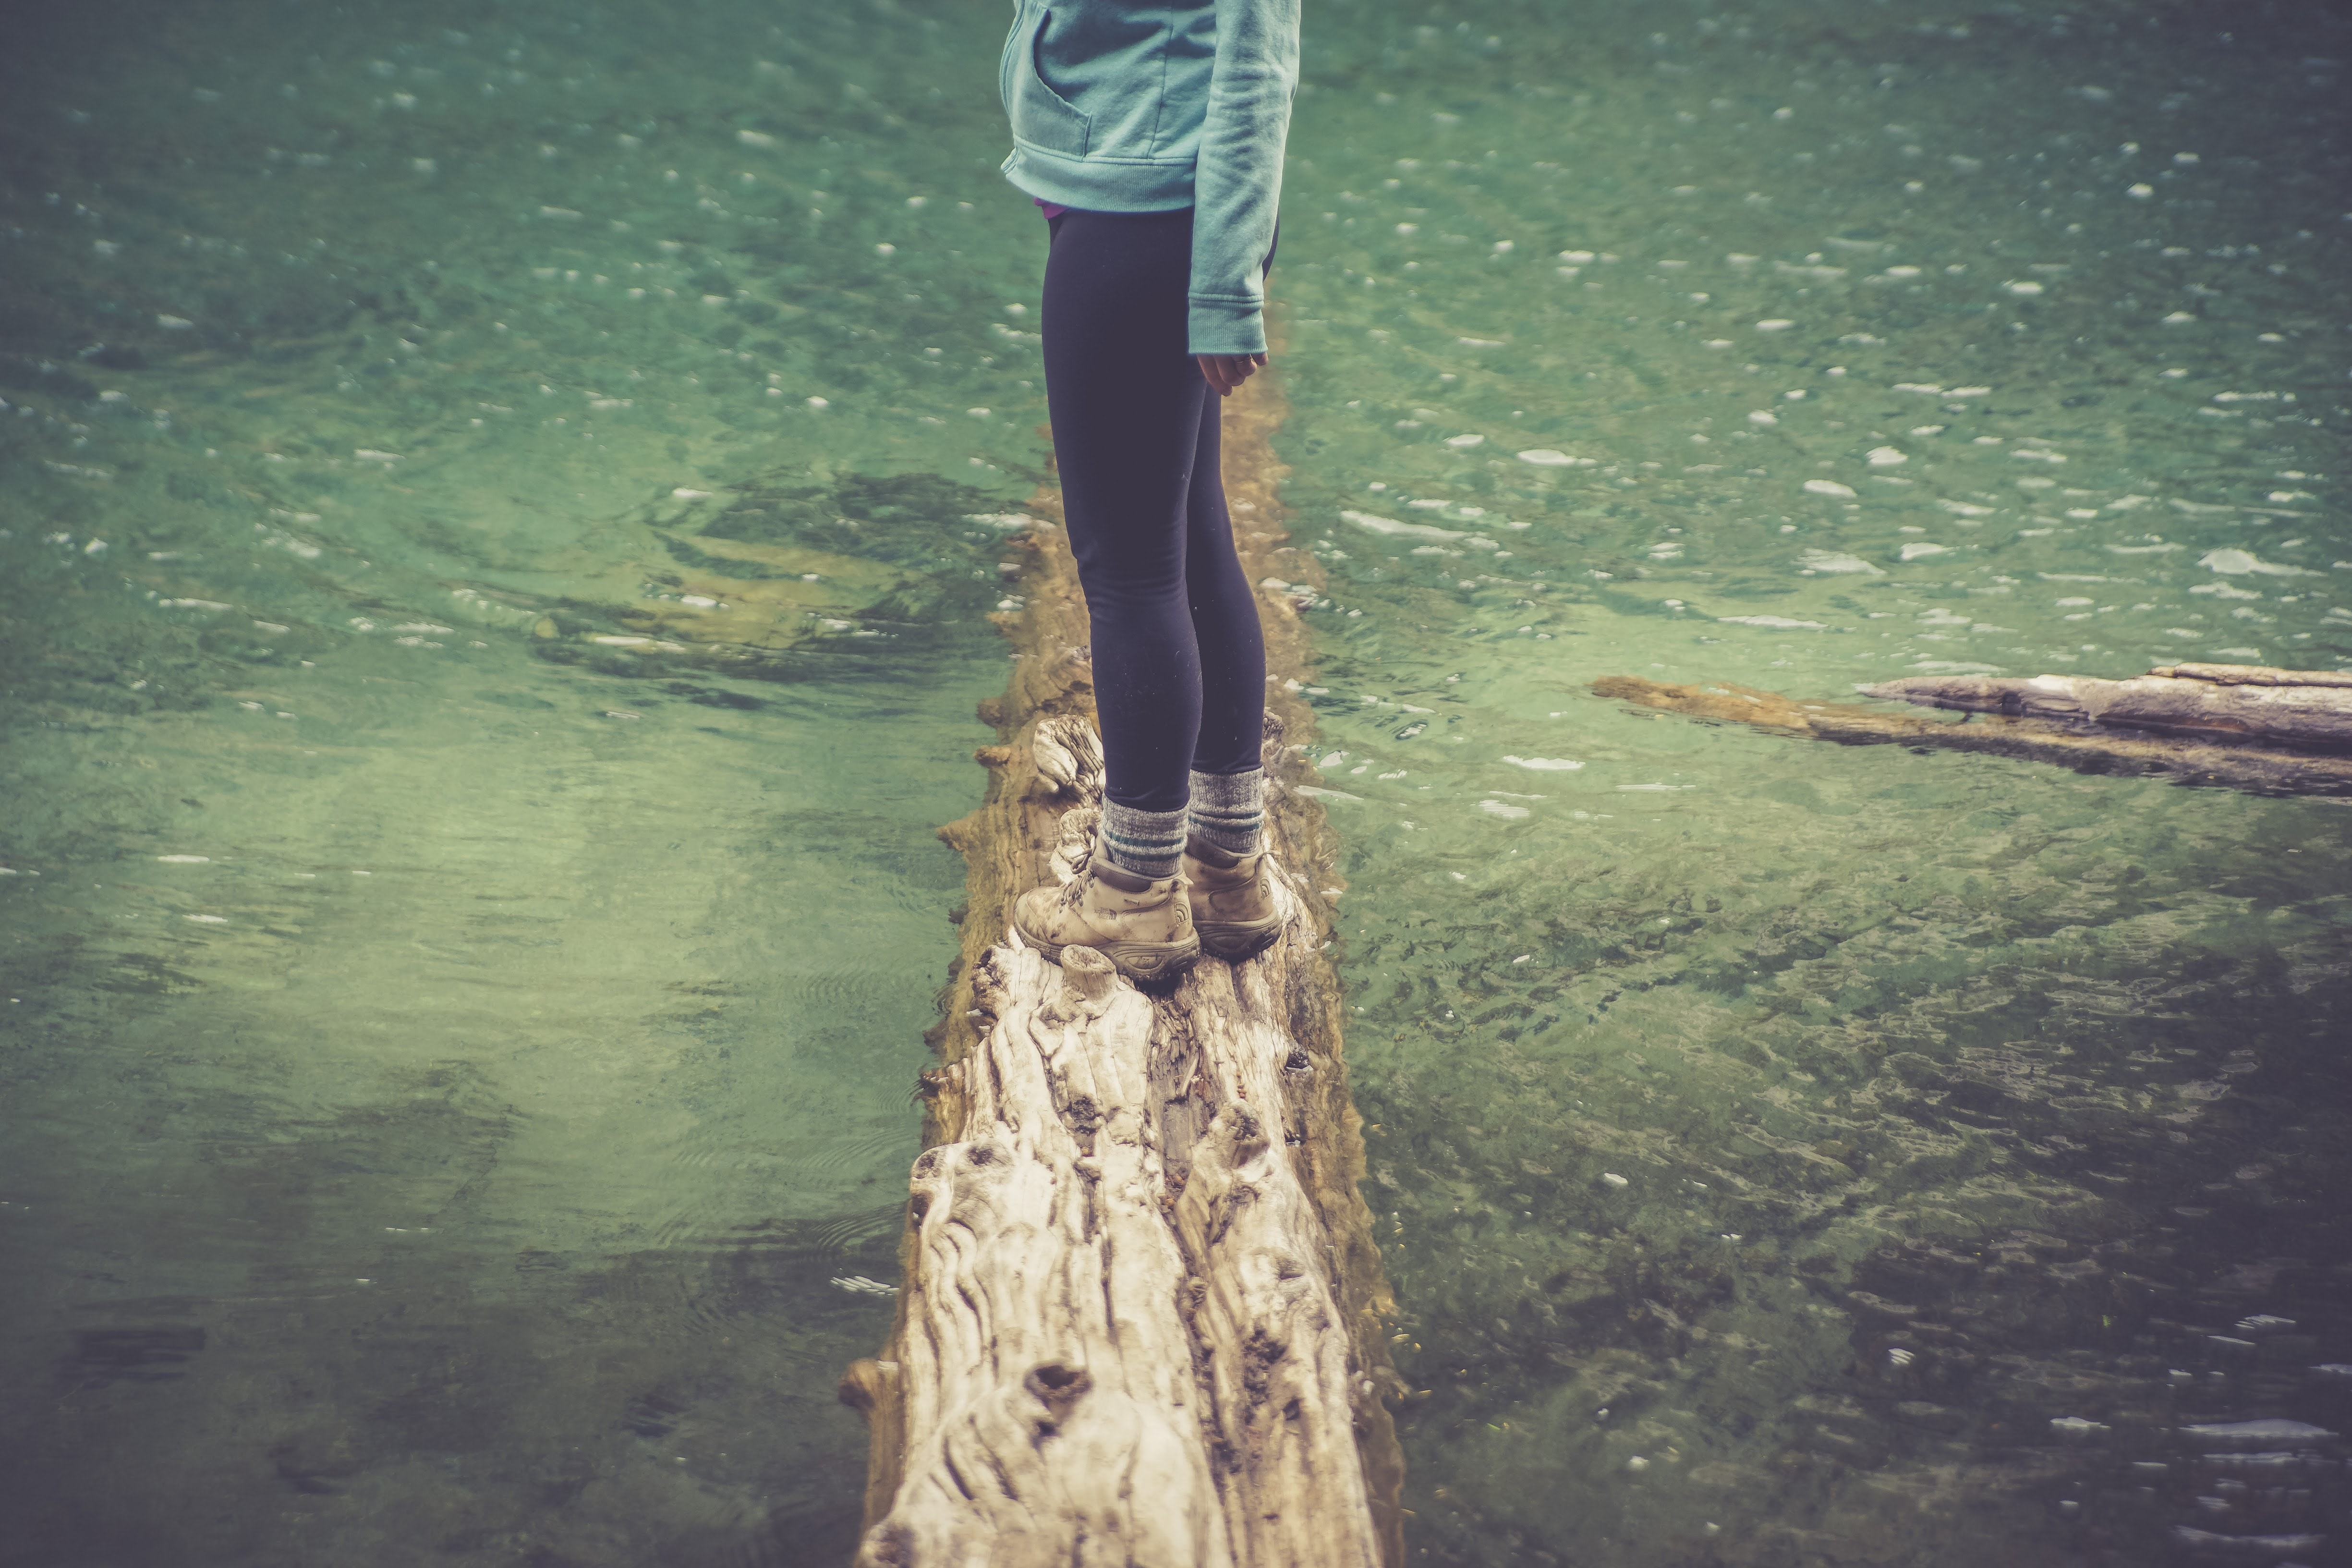 A woman standing on a log submerged in a lake